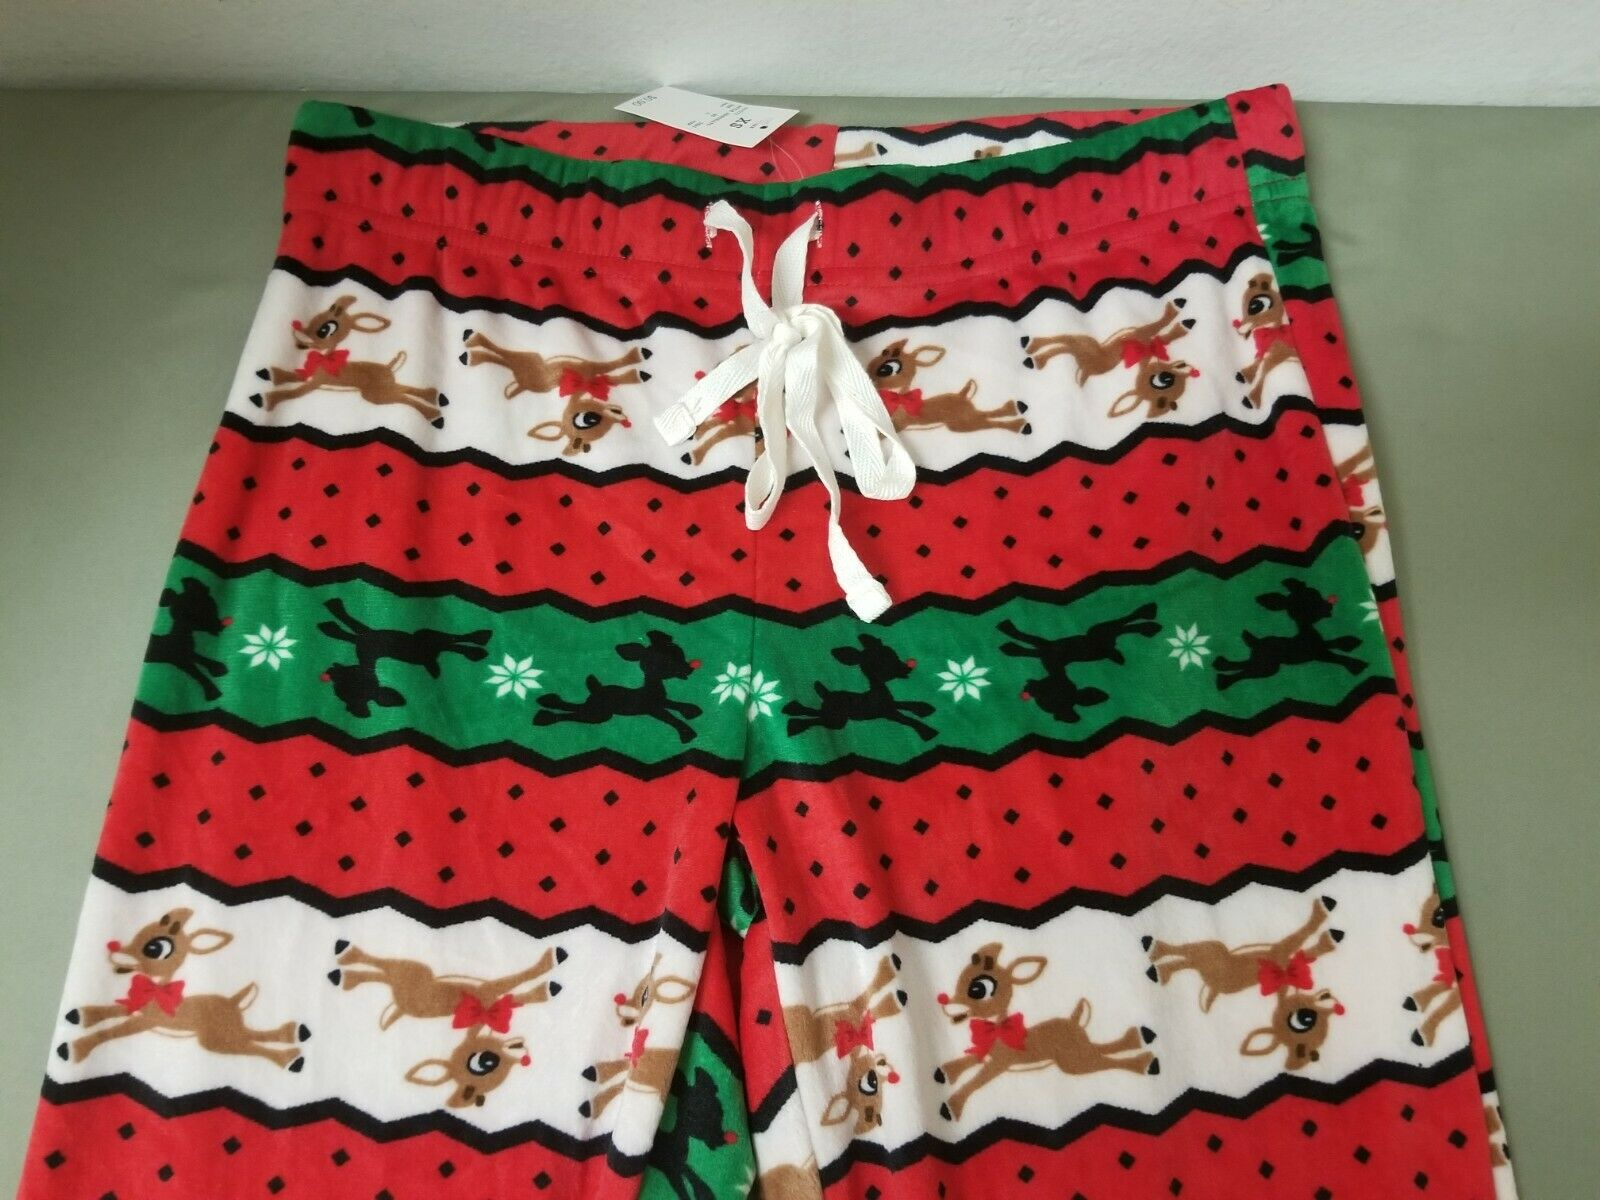 Comfy Sleepwear Set.Retail 27.99 Details about  /New Womens Rudolph The Red Nosed Reindeer 2 Pc